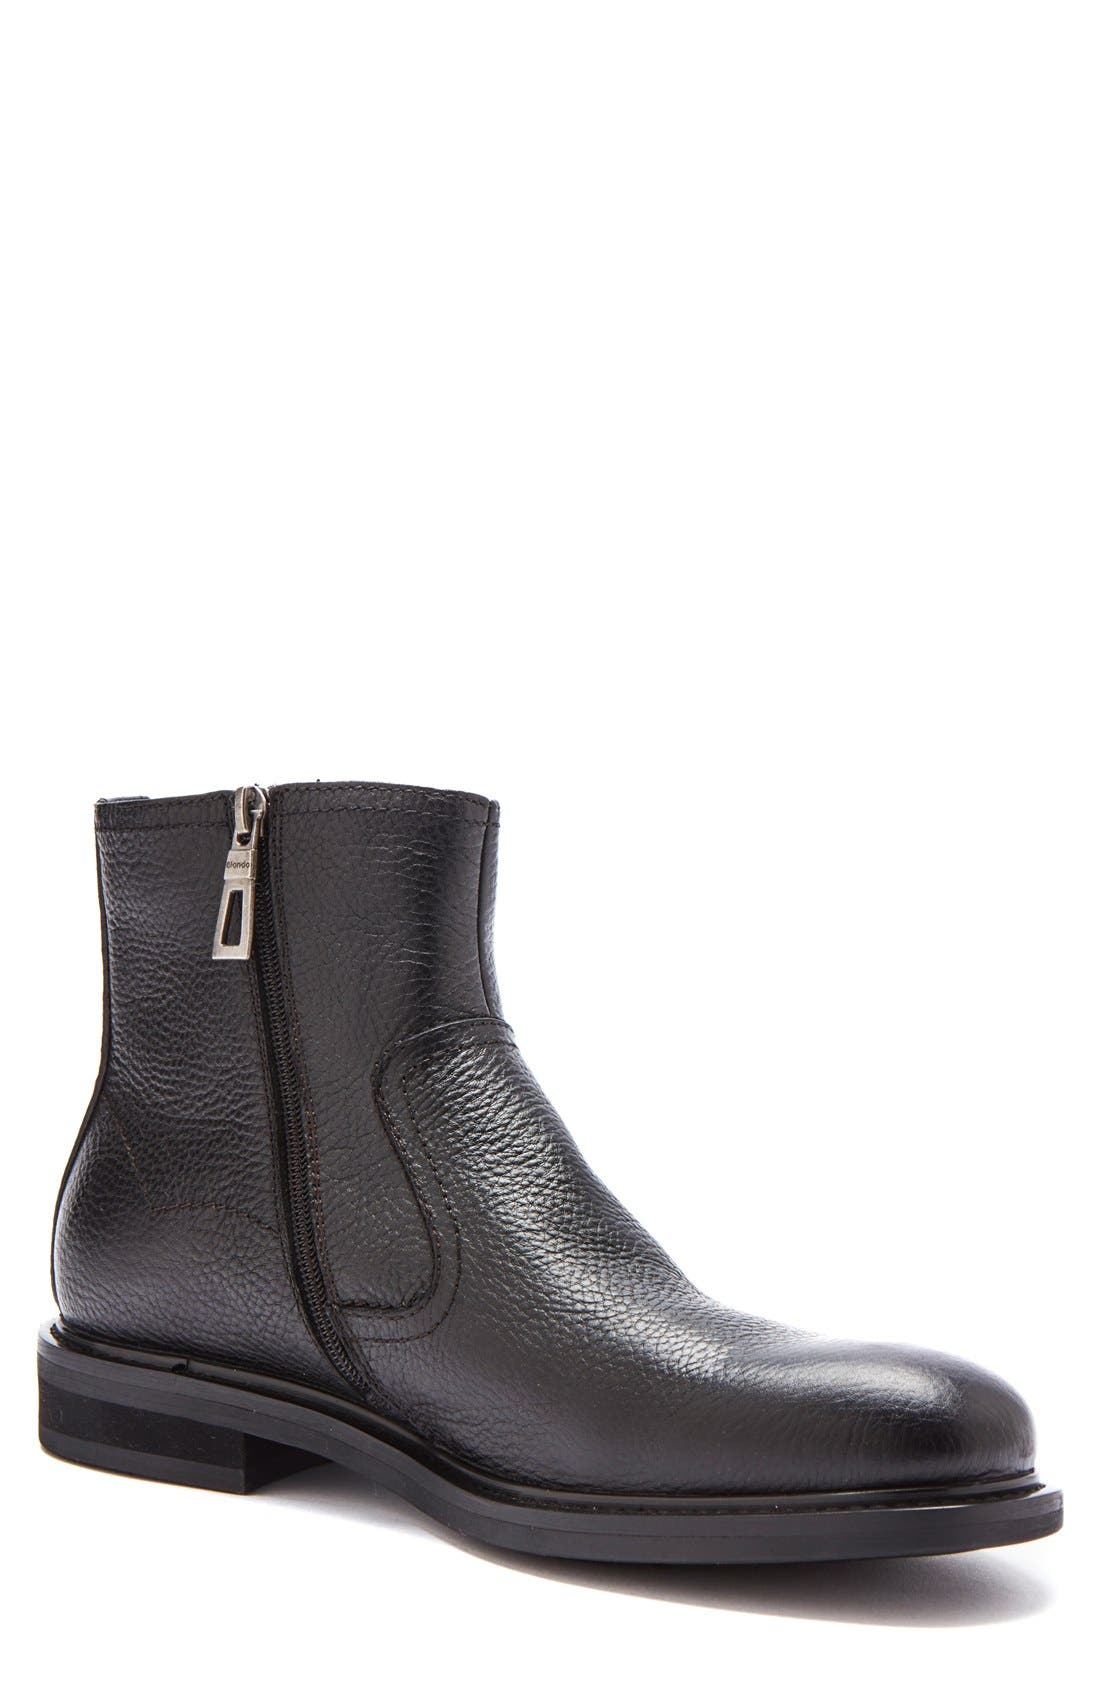 'Fried' Waterproof Zip Boot,                         Main,                         color, Black Leather